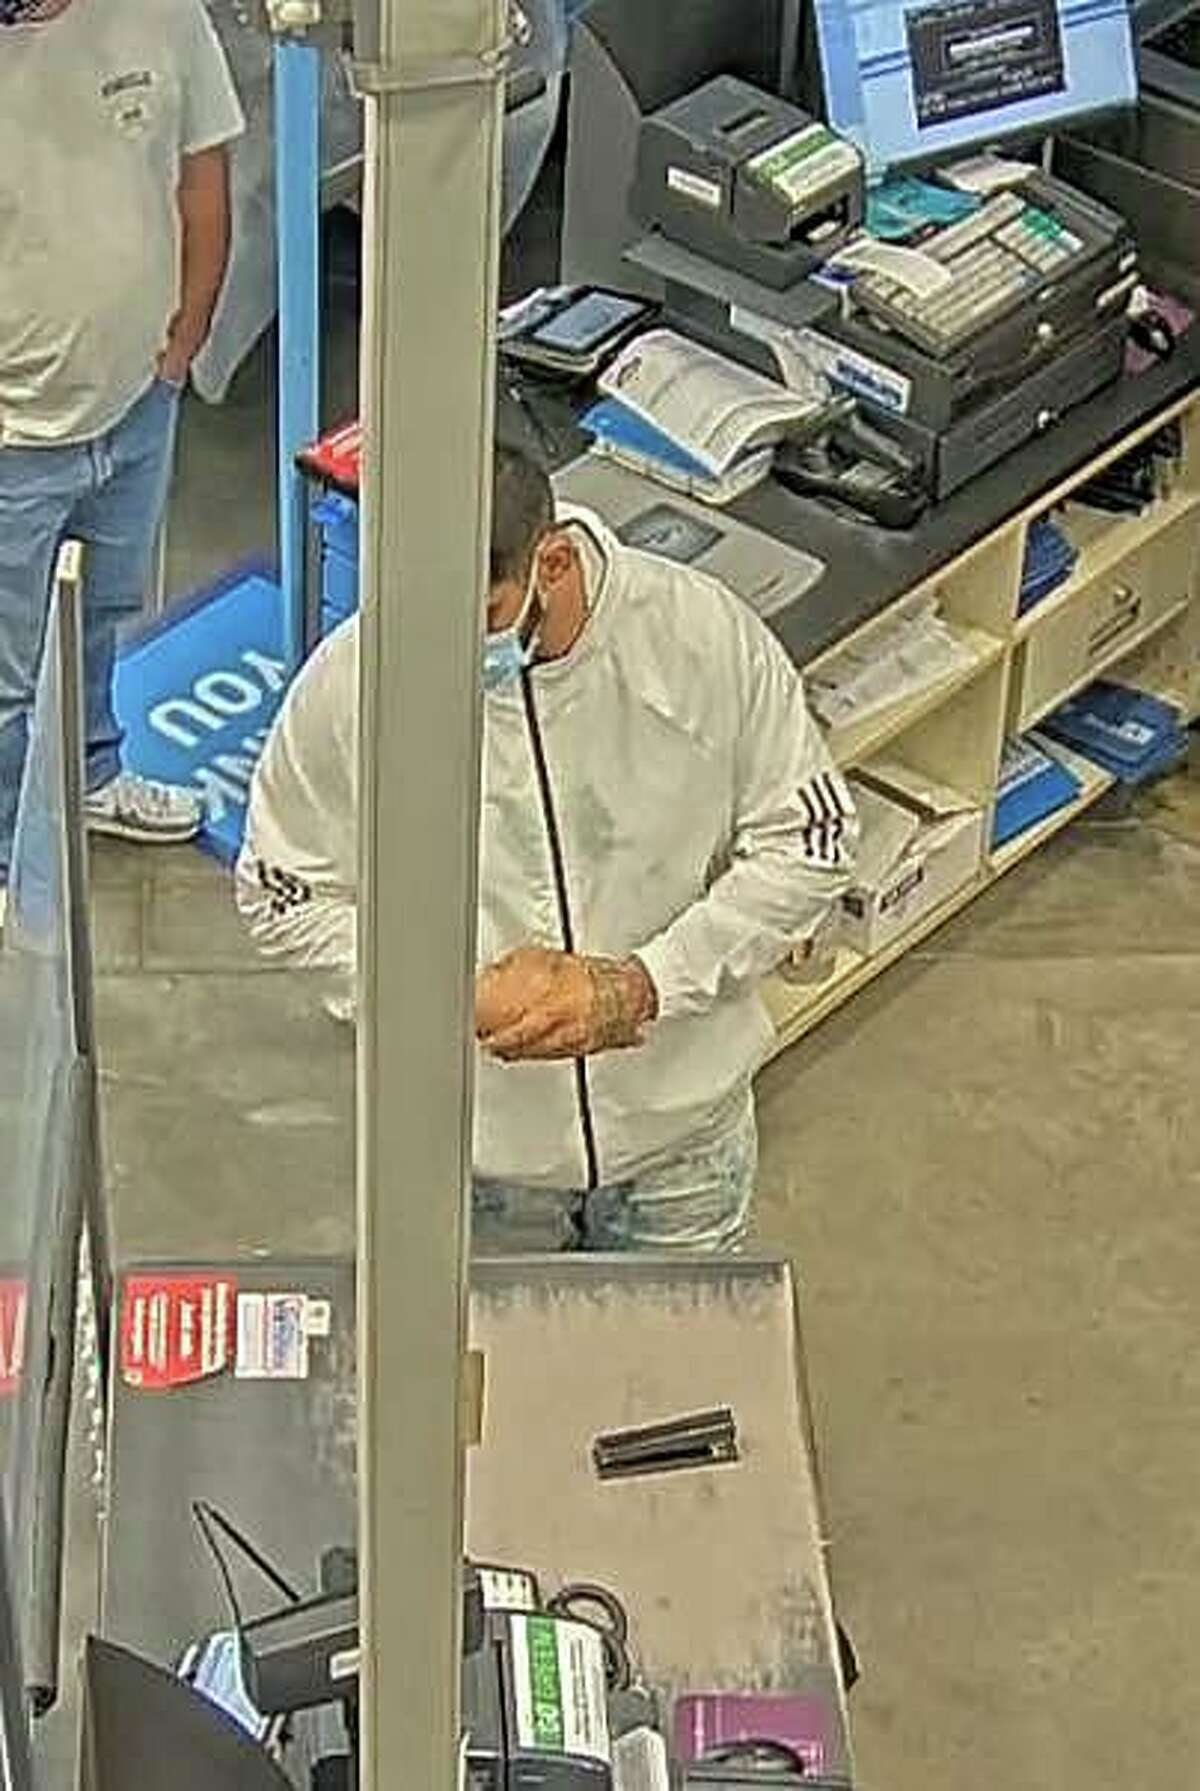 Waterford police are asking the public's help in identifying a suspect who stole $600 in merchandise from Lowe's and then tried to return it for a refund. The attempted theft happened on Tuesday, Sept. 15, 2020.